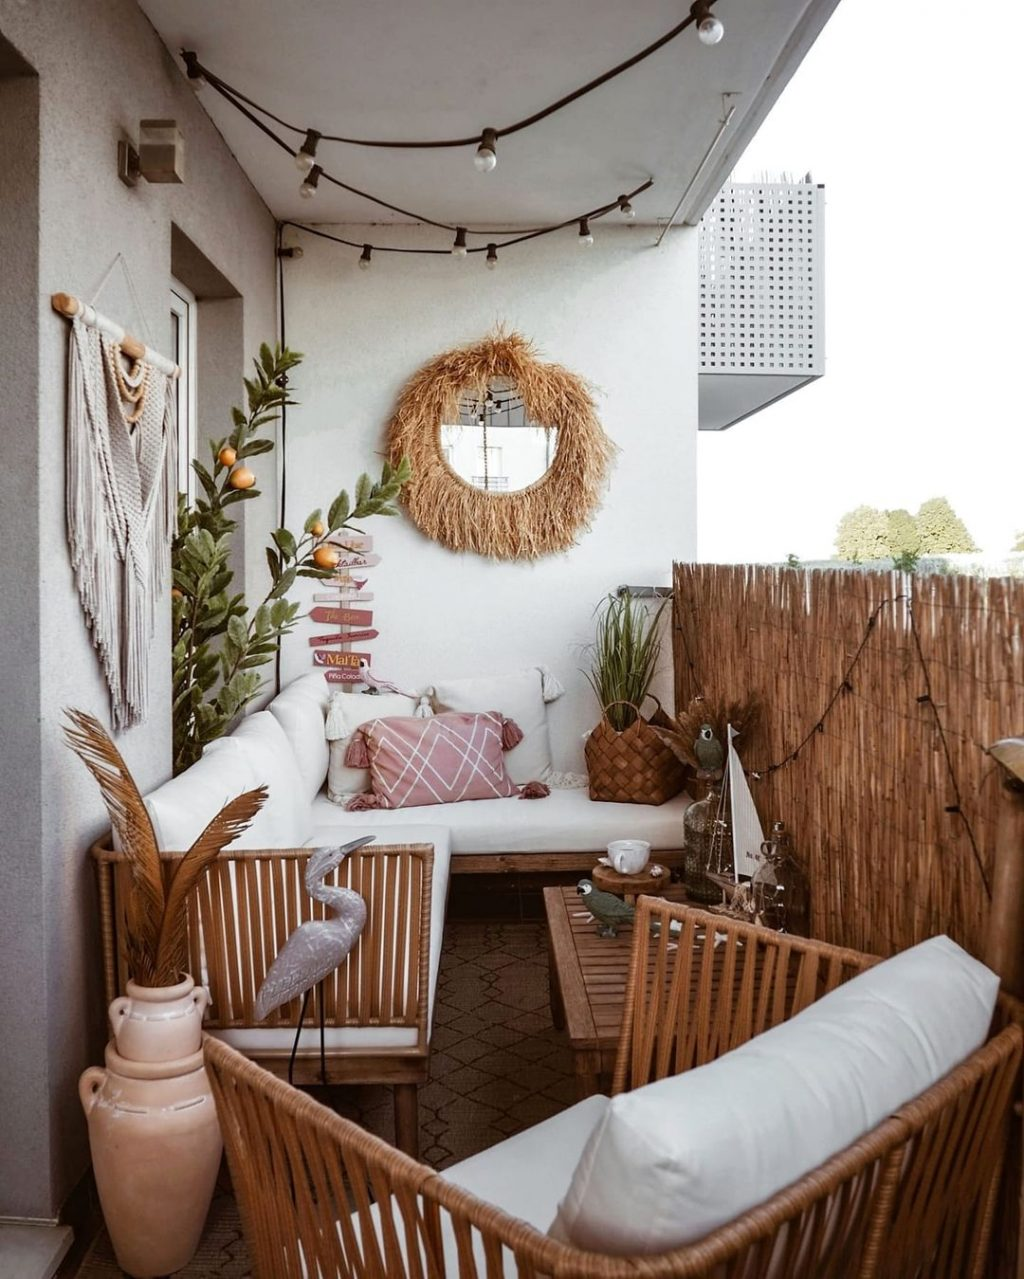 15 Decor Ideas for Small Outdoor Spaces